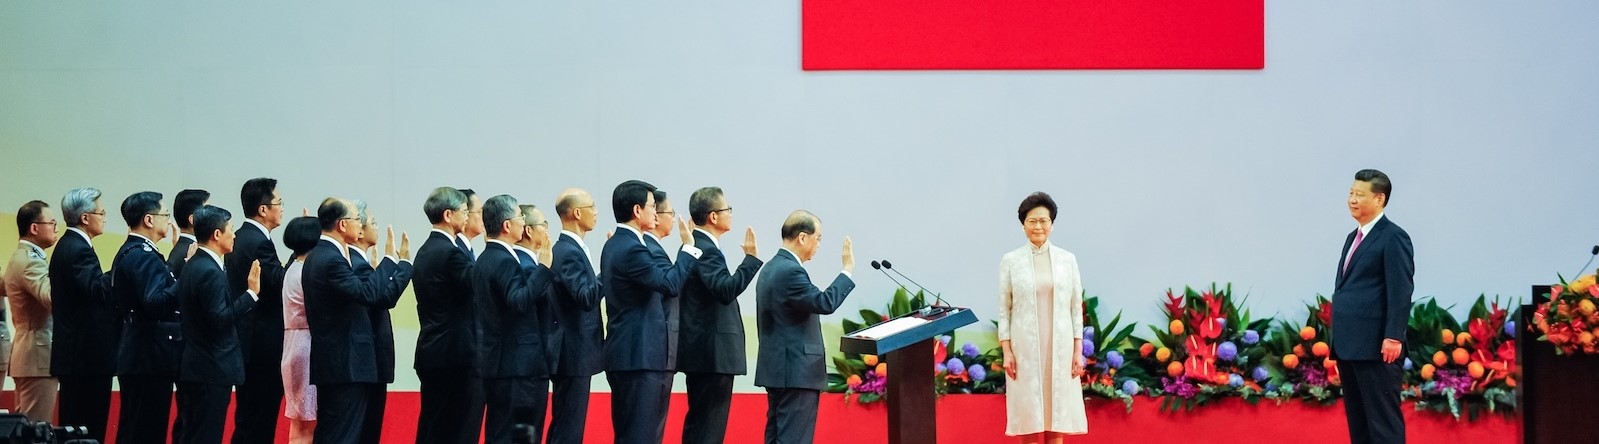 Hong Kong Chief Executive Carrie Lam and cabinet are sworn in by Chinese President Xi Jinping in Hong Kong in 2017 (Photo: Keith Tsuji/Getty)